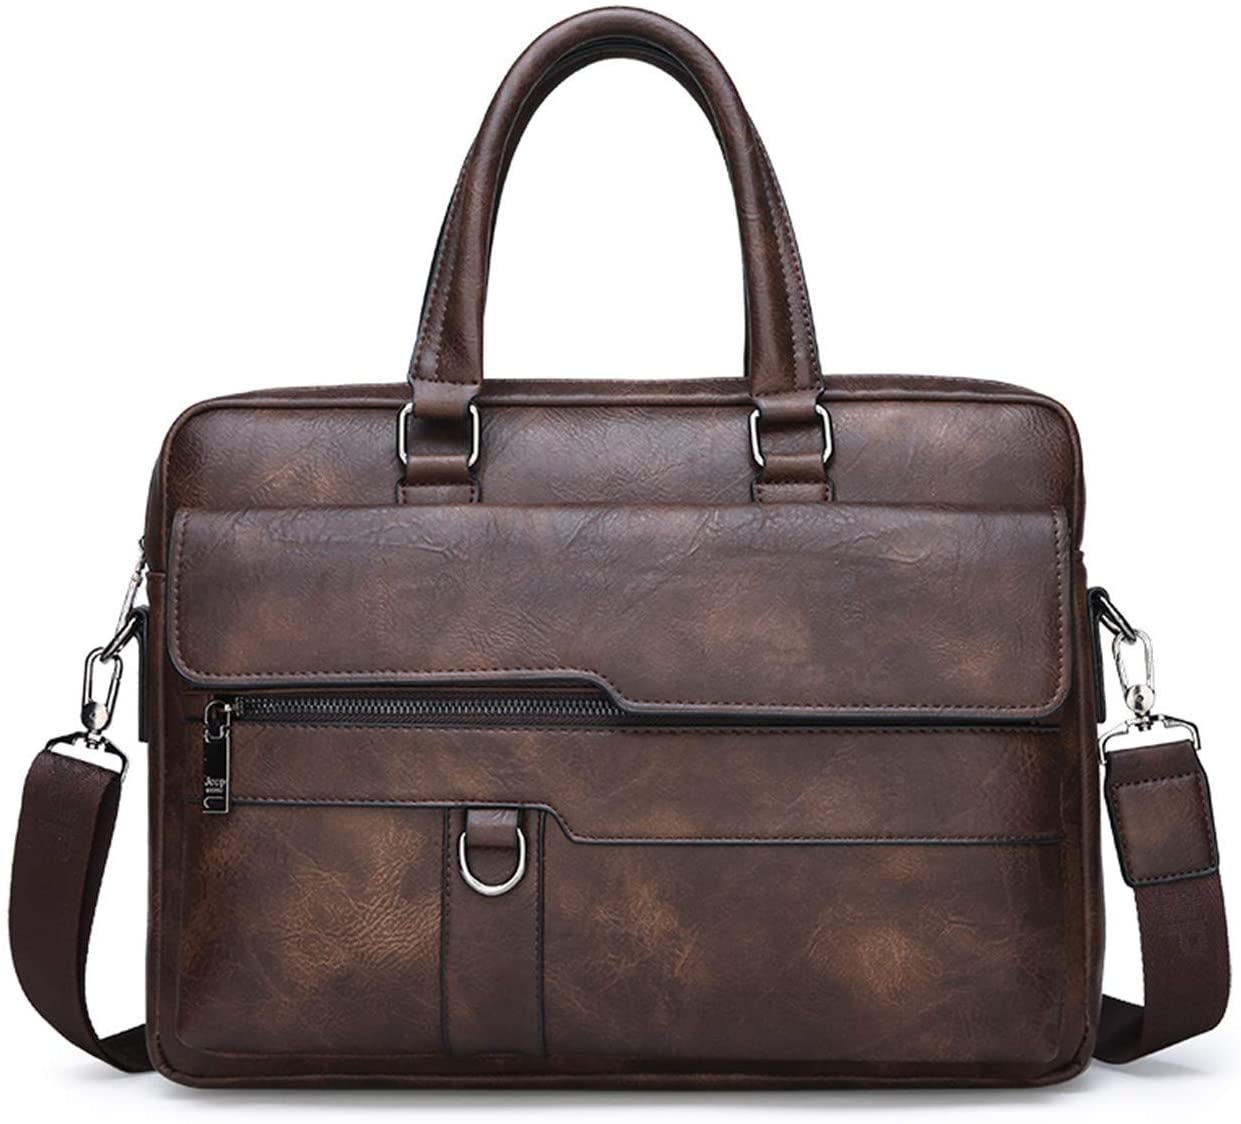 JEEP BULUO Men Business Briefcase Leather Bag 13.3 inch Laptop Case(Brown)